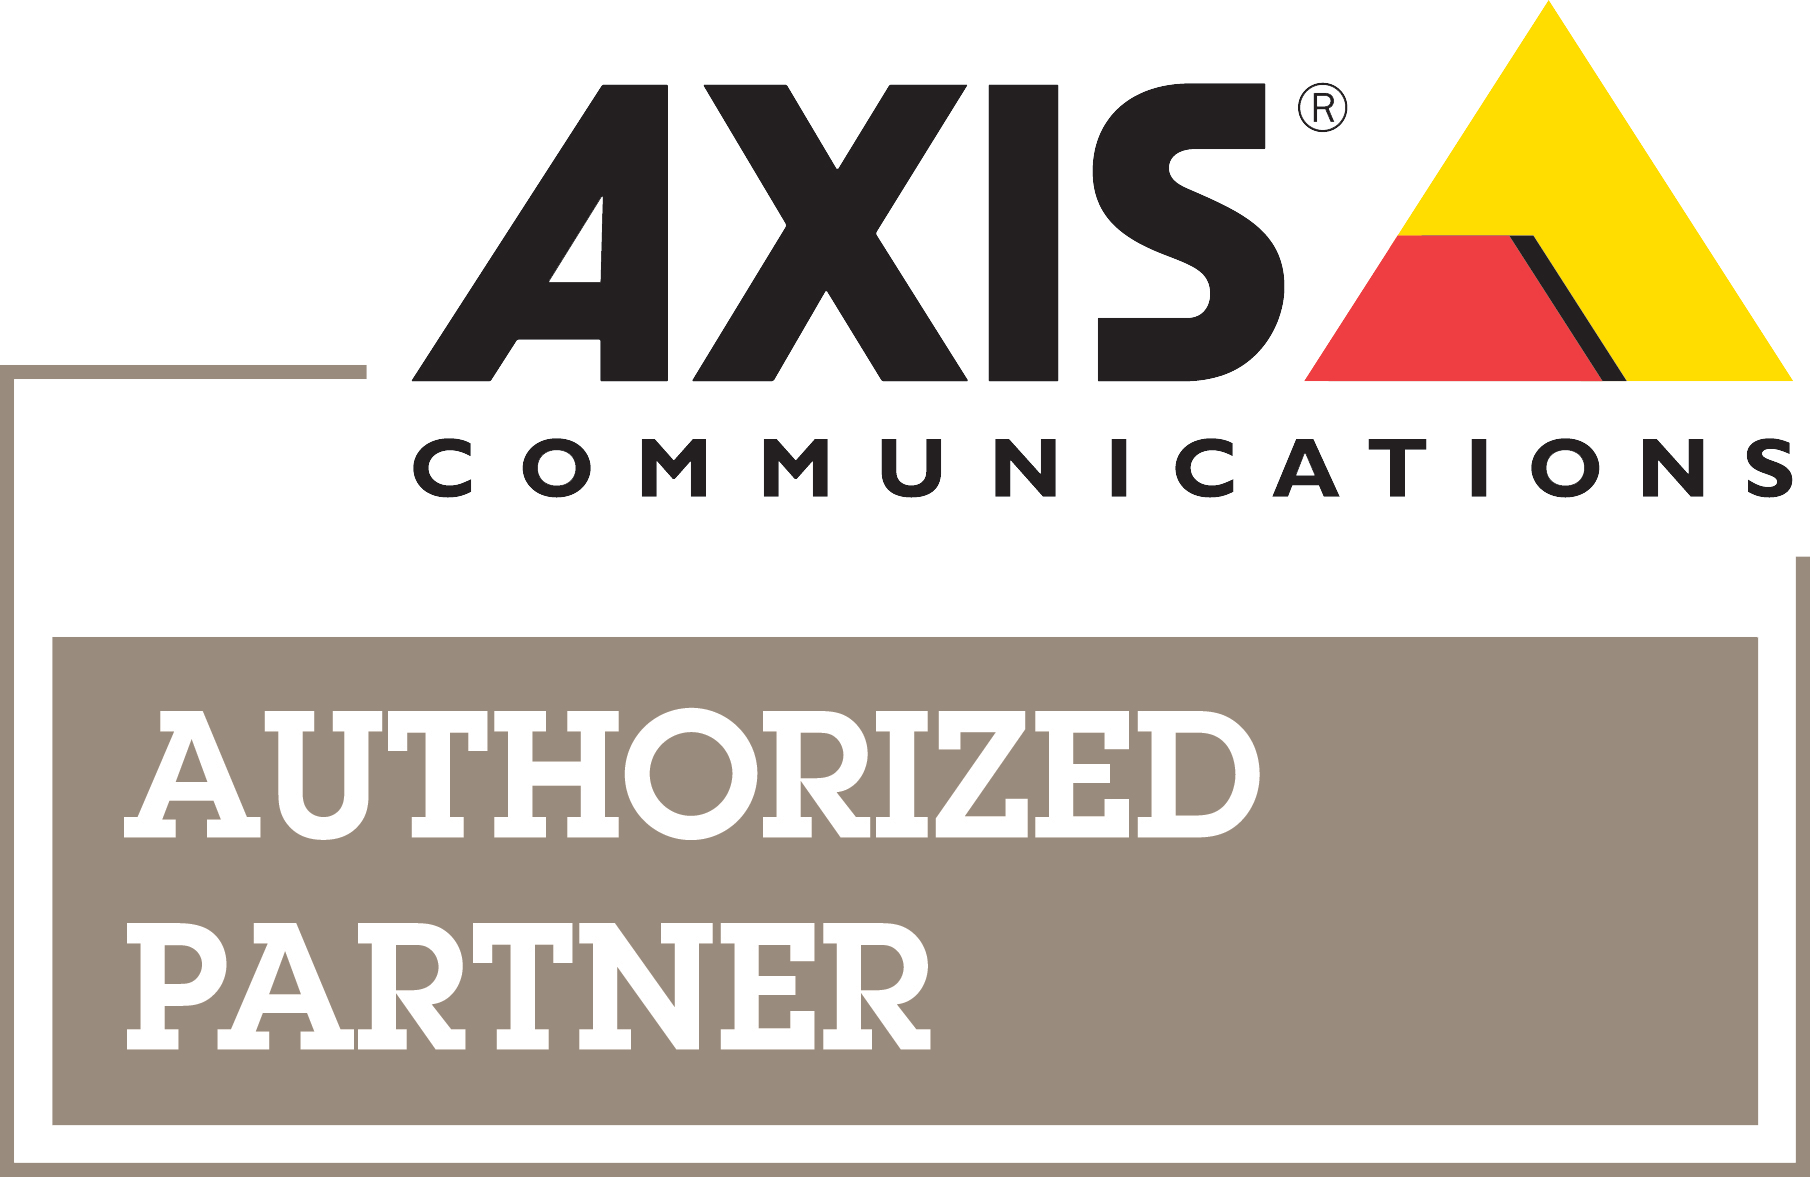 axis_cpp_authorized_cmyk_logo_transparent.png